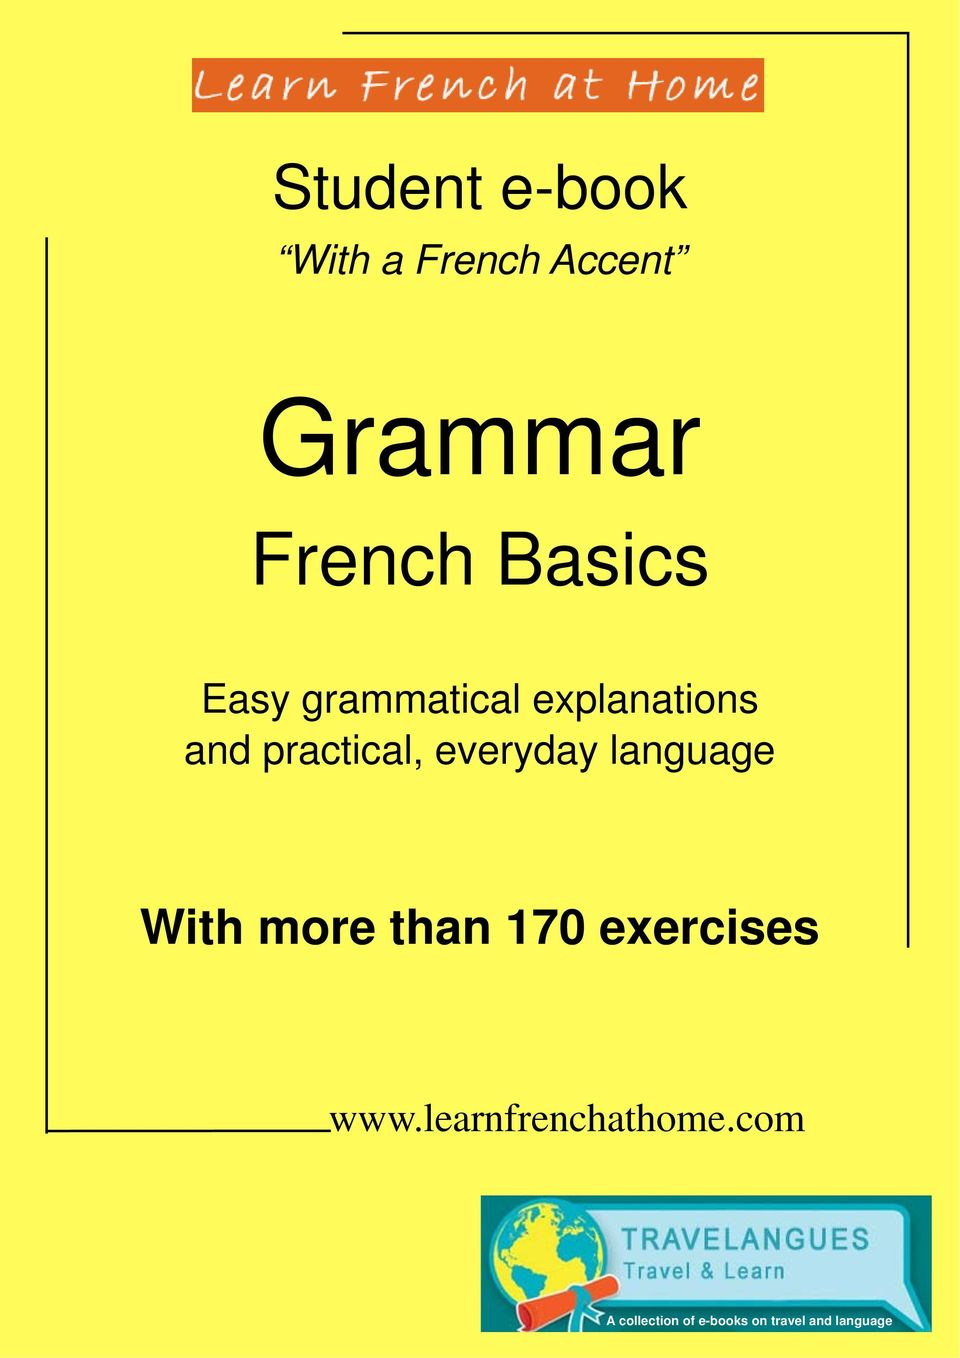 everyday language With more than 170 exercises www.